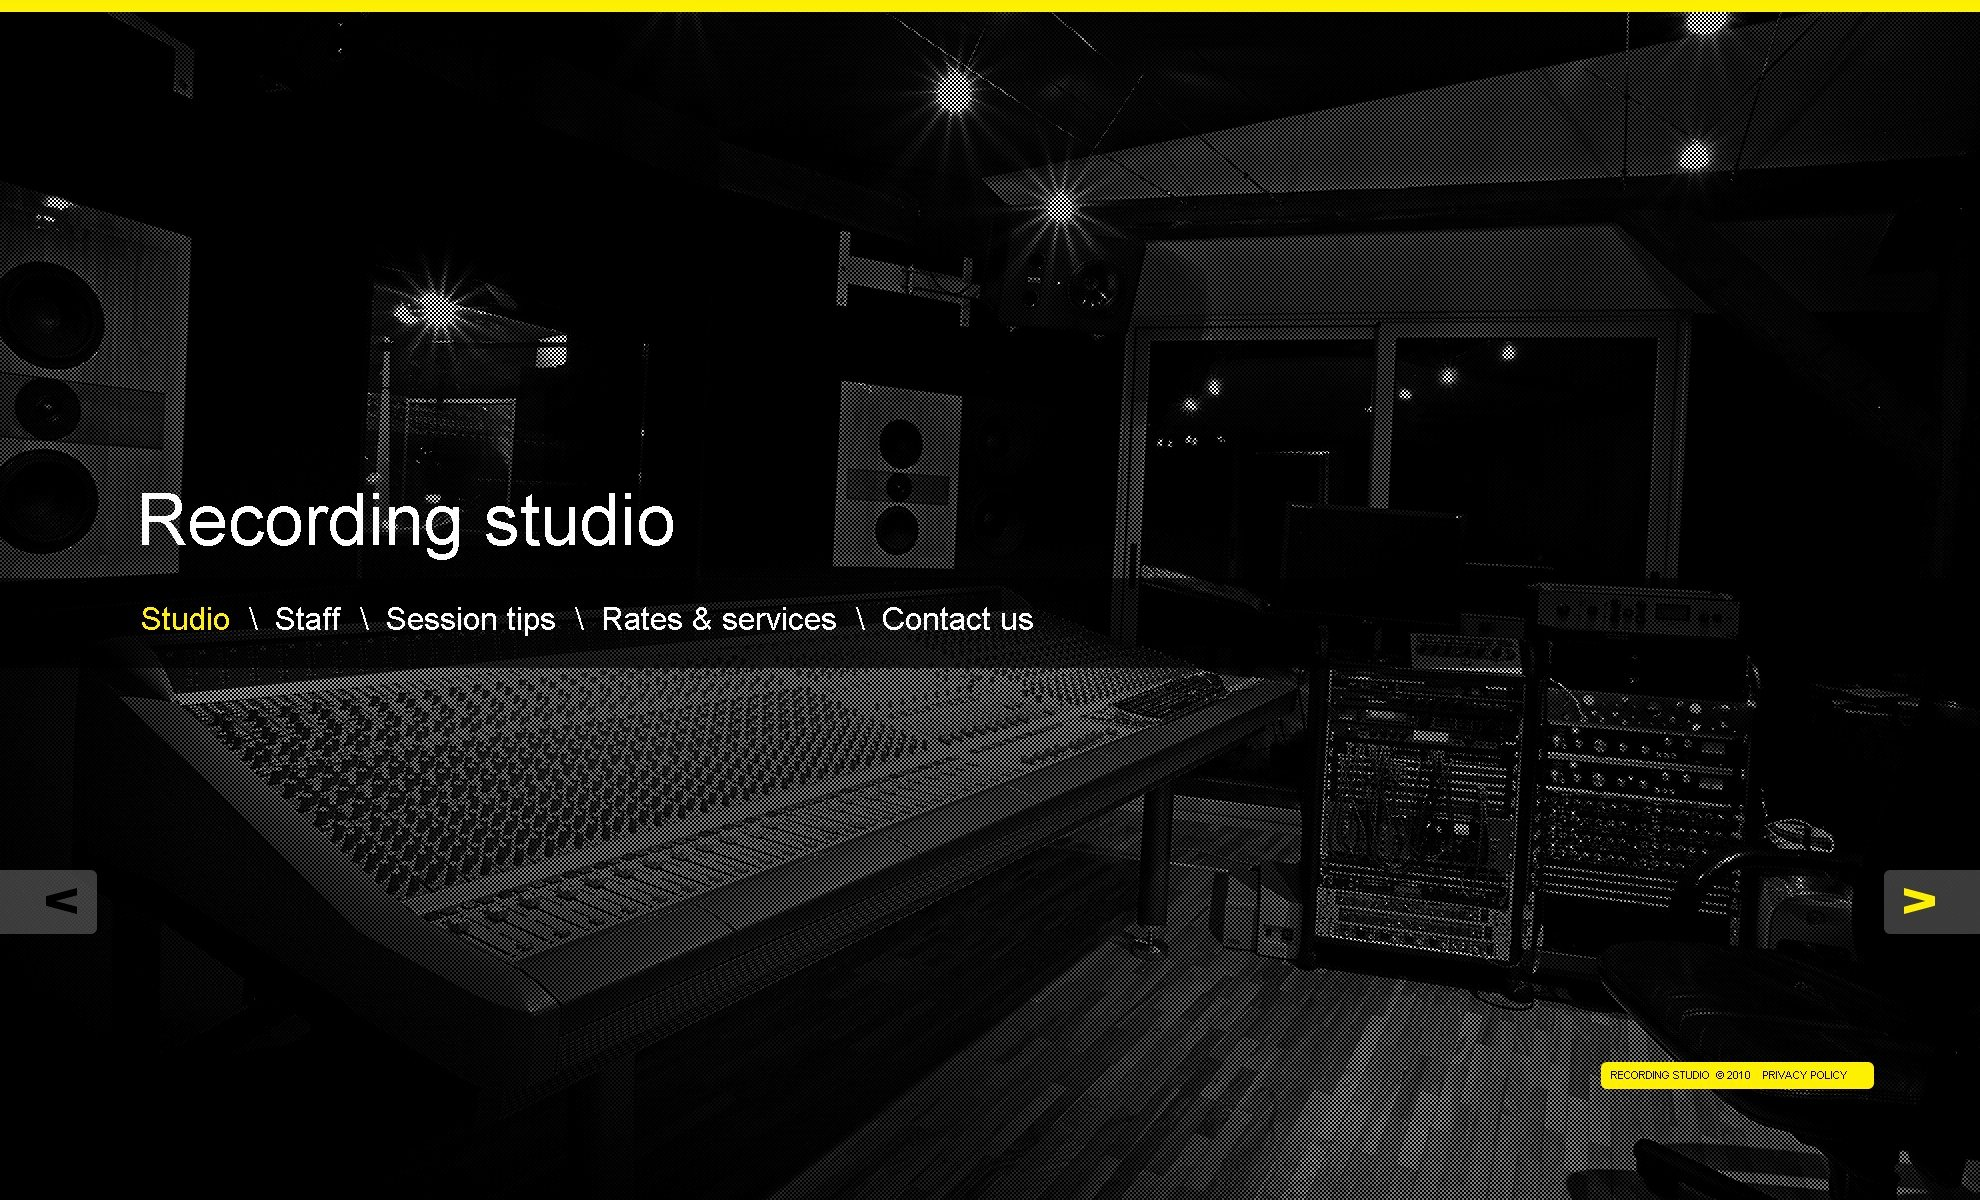 Music Producer Website Template Luxury Recording Studio Website Template